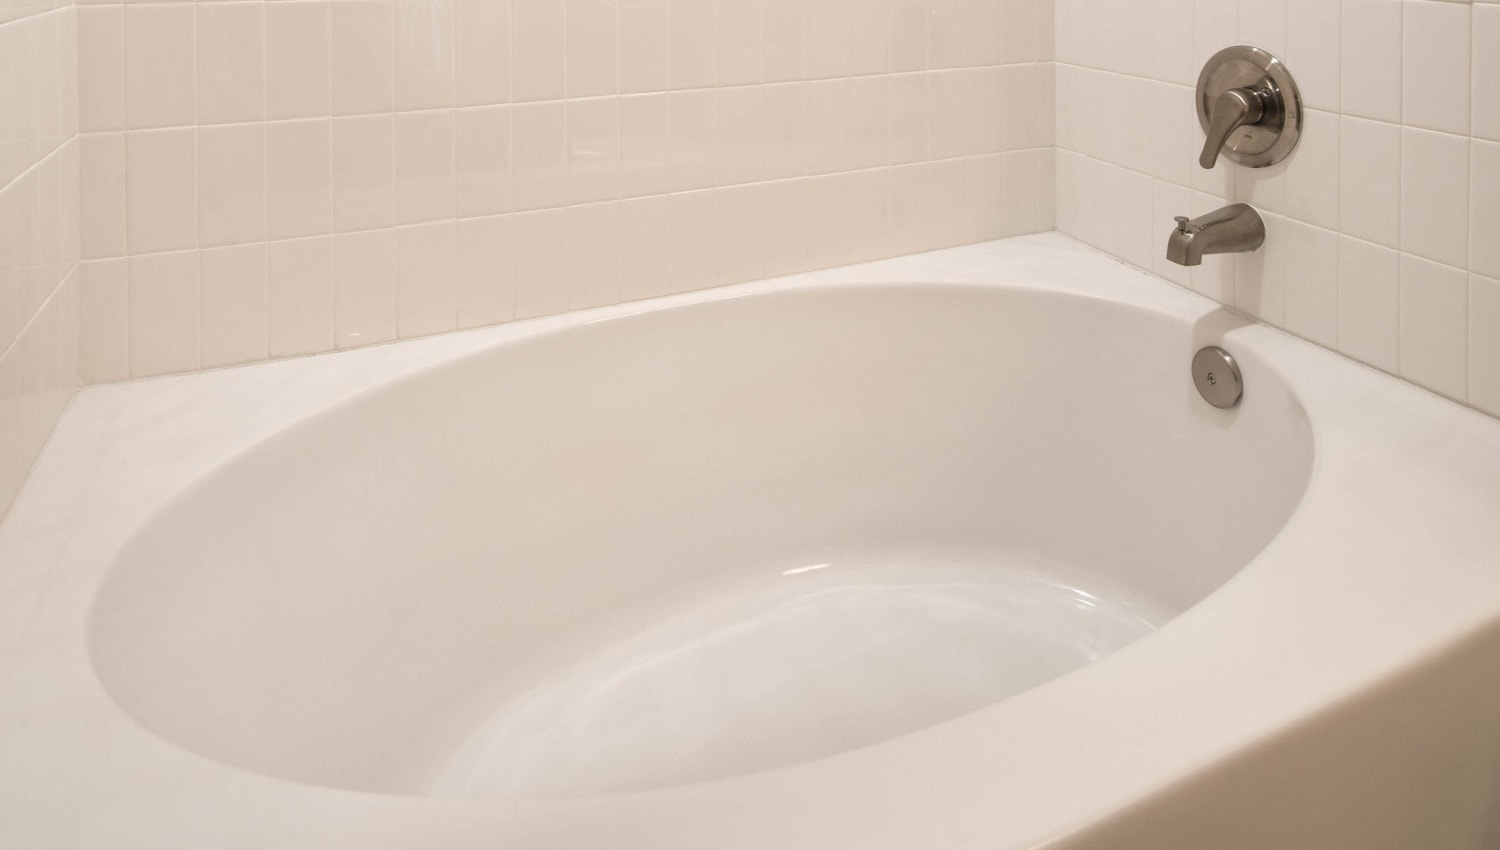 Oval soaking tub in the master bathroom of a model apartment at Olympus Waterford in Keller, Texas